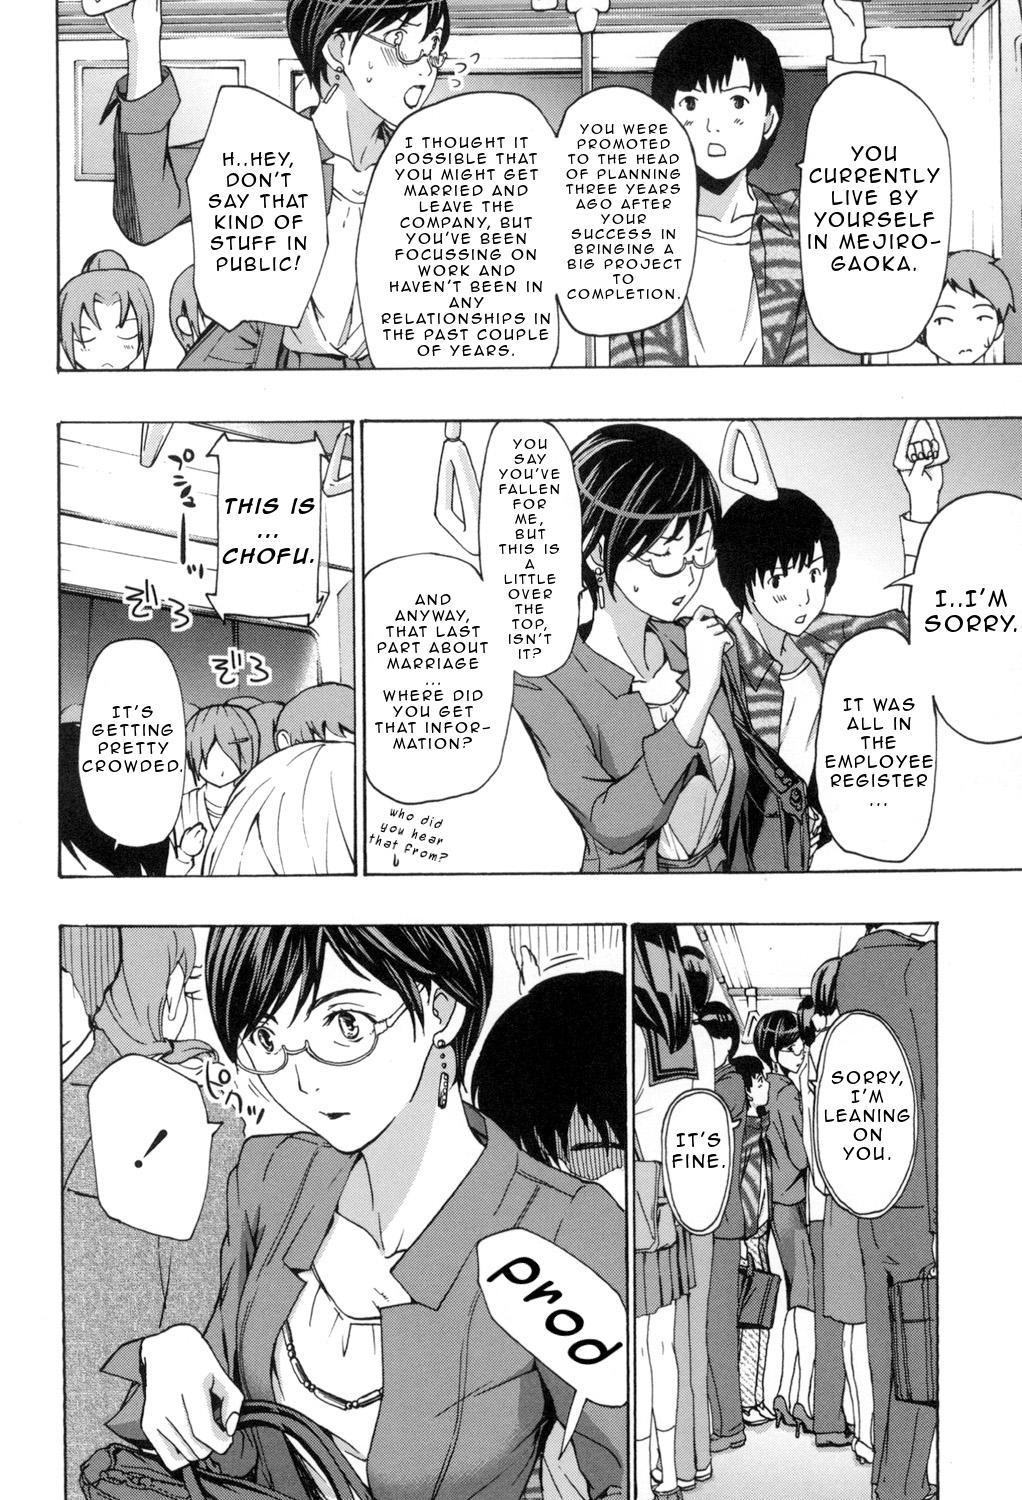 [Asagi Ryu] Onee-san to Aishiacchaou! - Let's Love with Your Sister | Making Love with an Older Woman [English] [Junryuu] 88